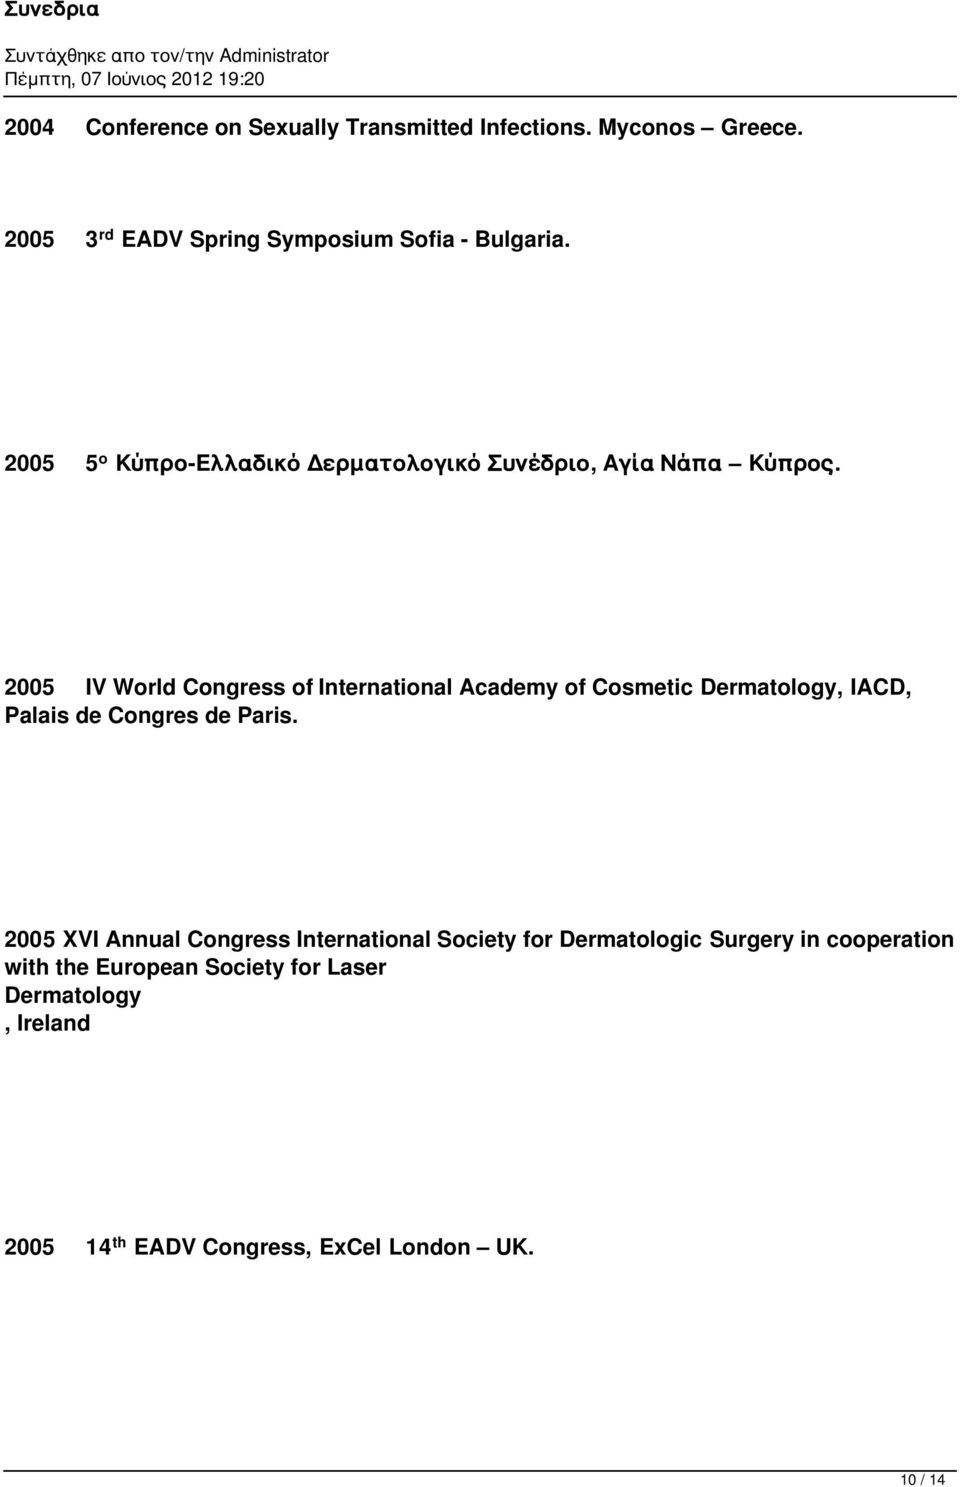 2005 IV World Congress of International Academy of Cosmetic Dermatology, IACD, Palais de Congres de Paris.